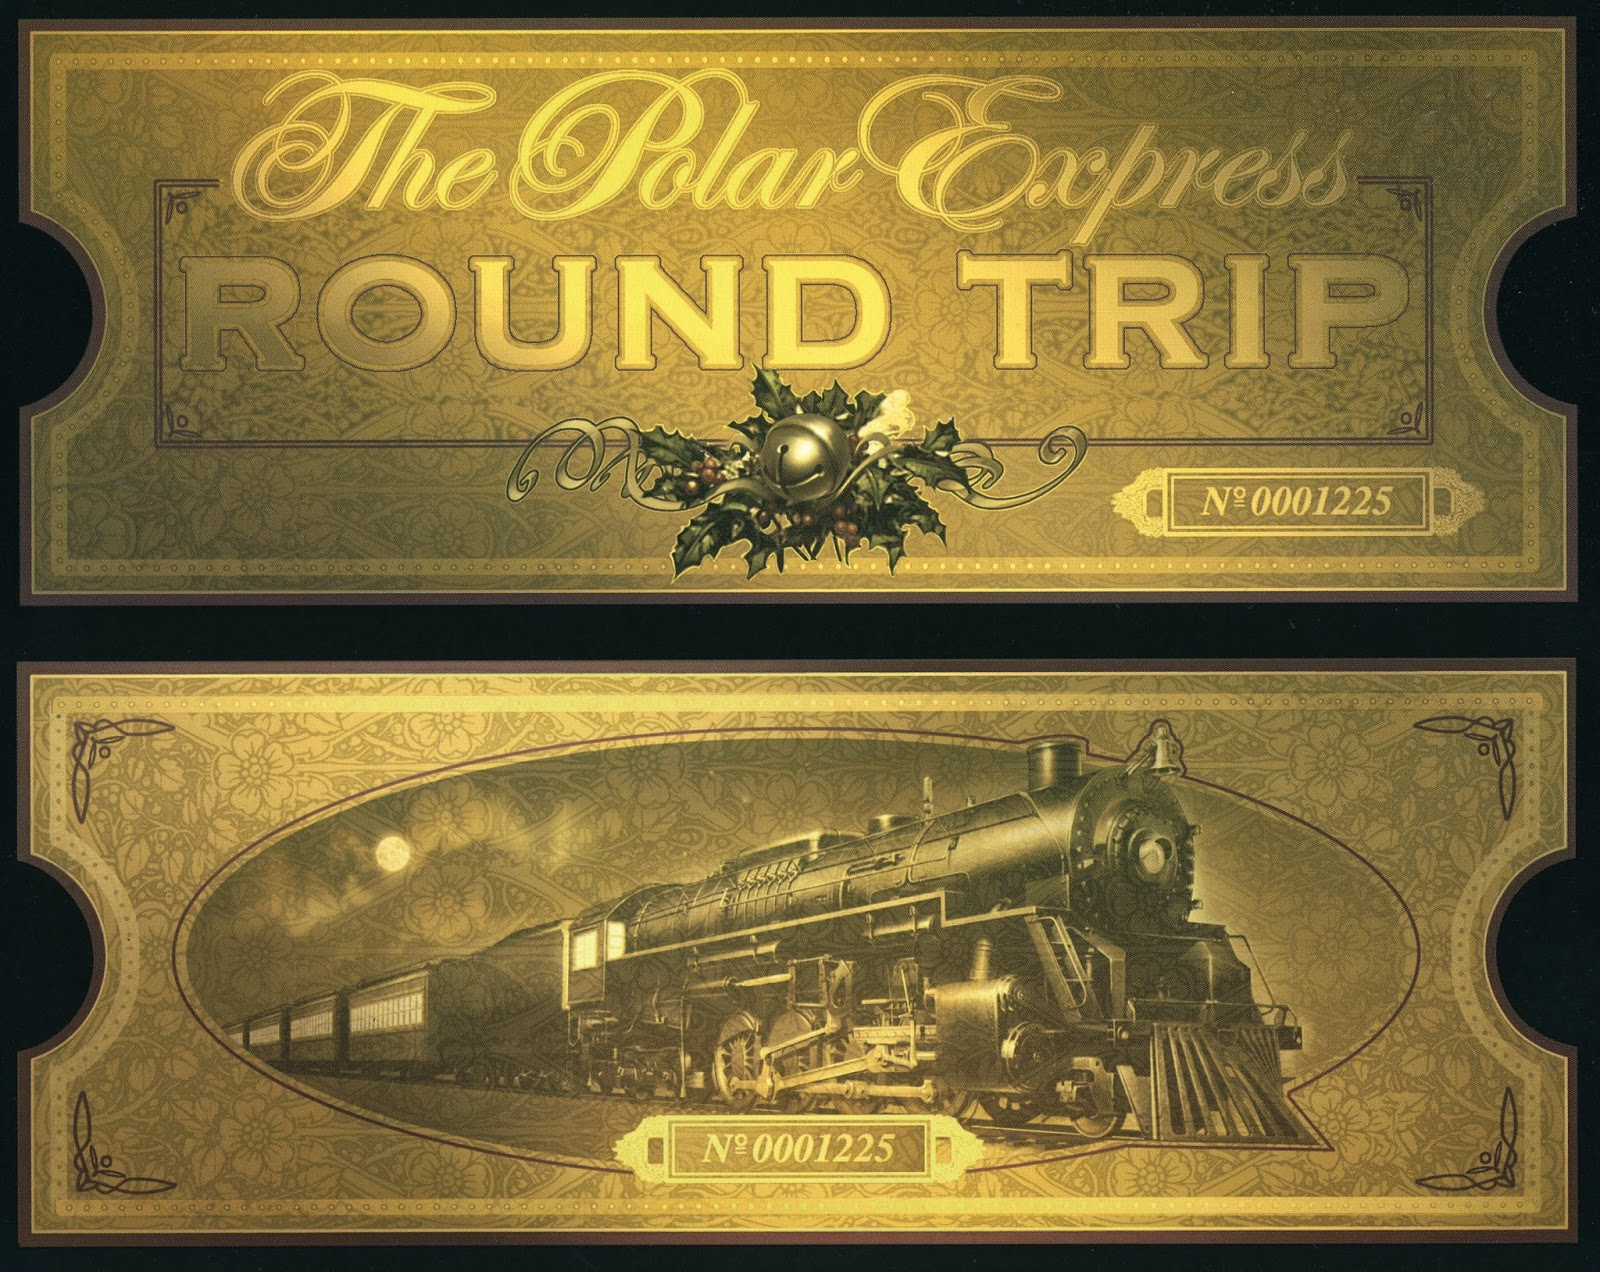 polar express golden ticket template for the love of the child the polar express birthday